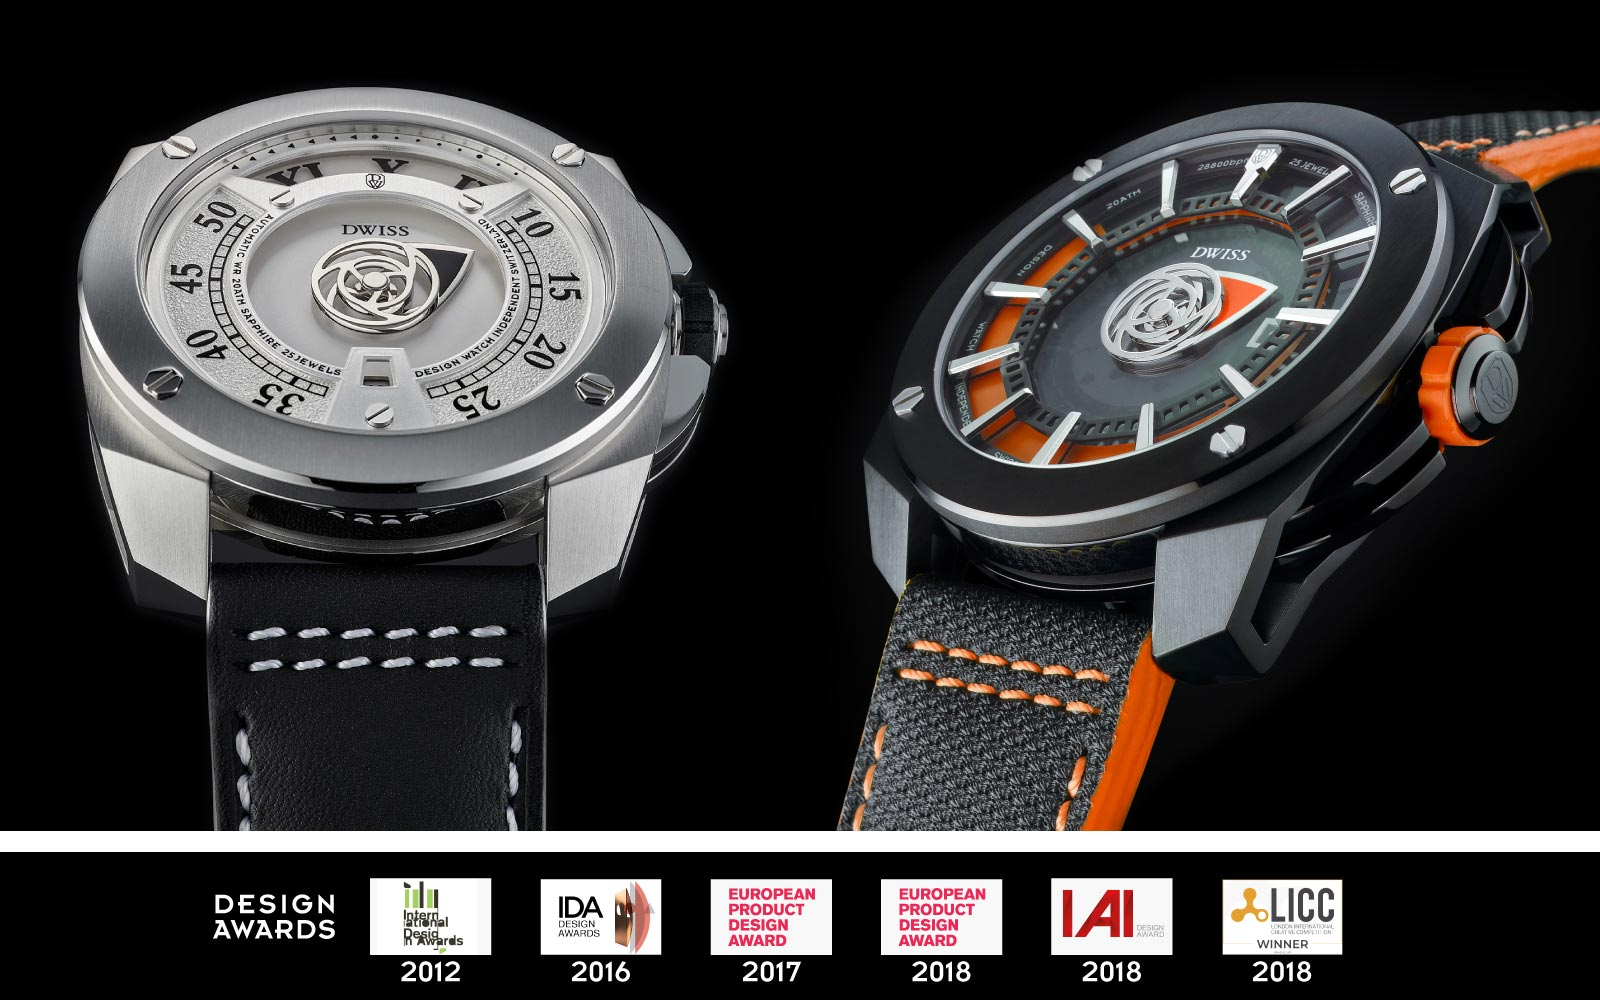 DWISS design awarded watches